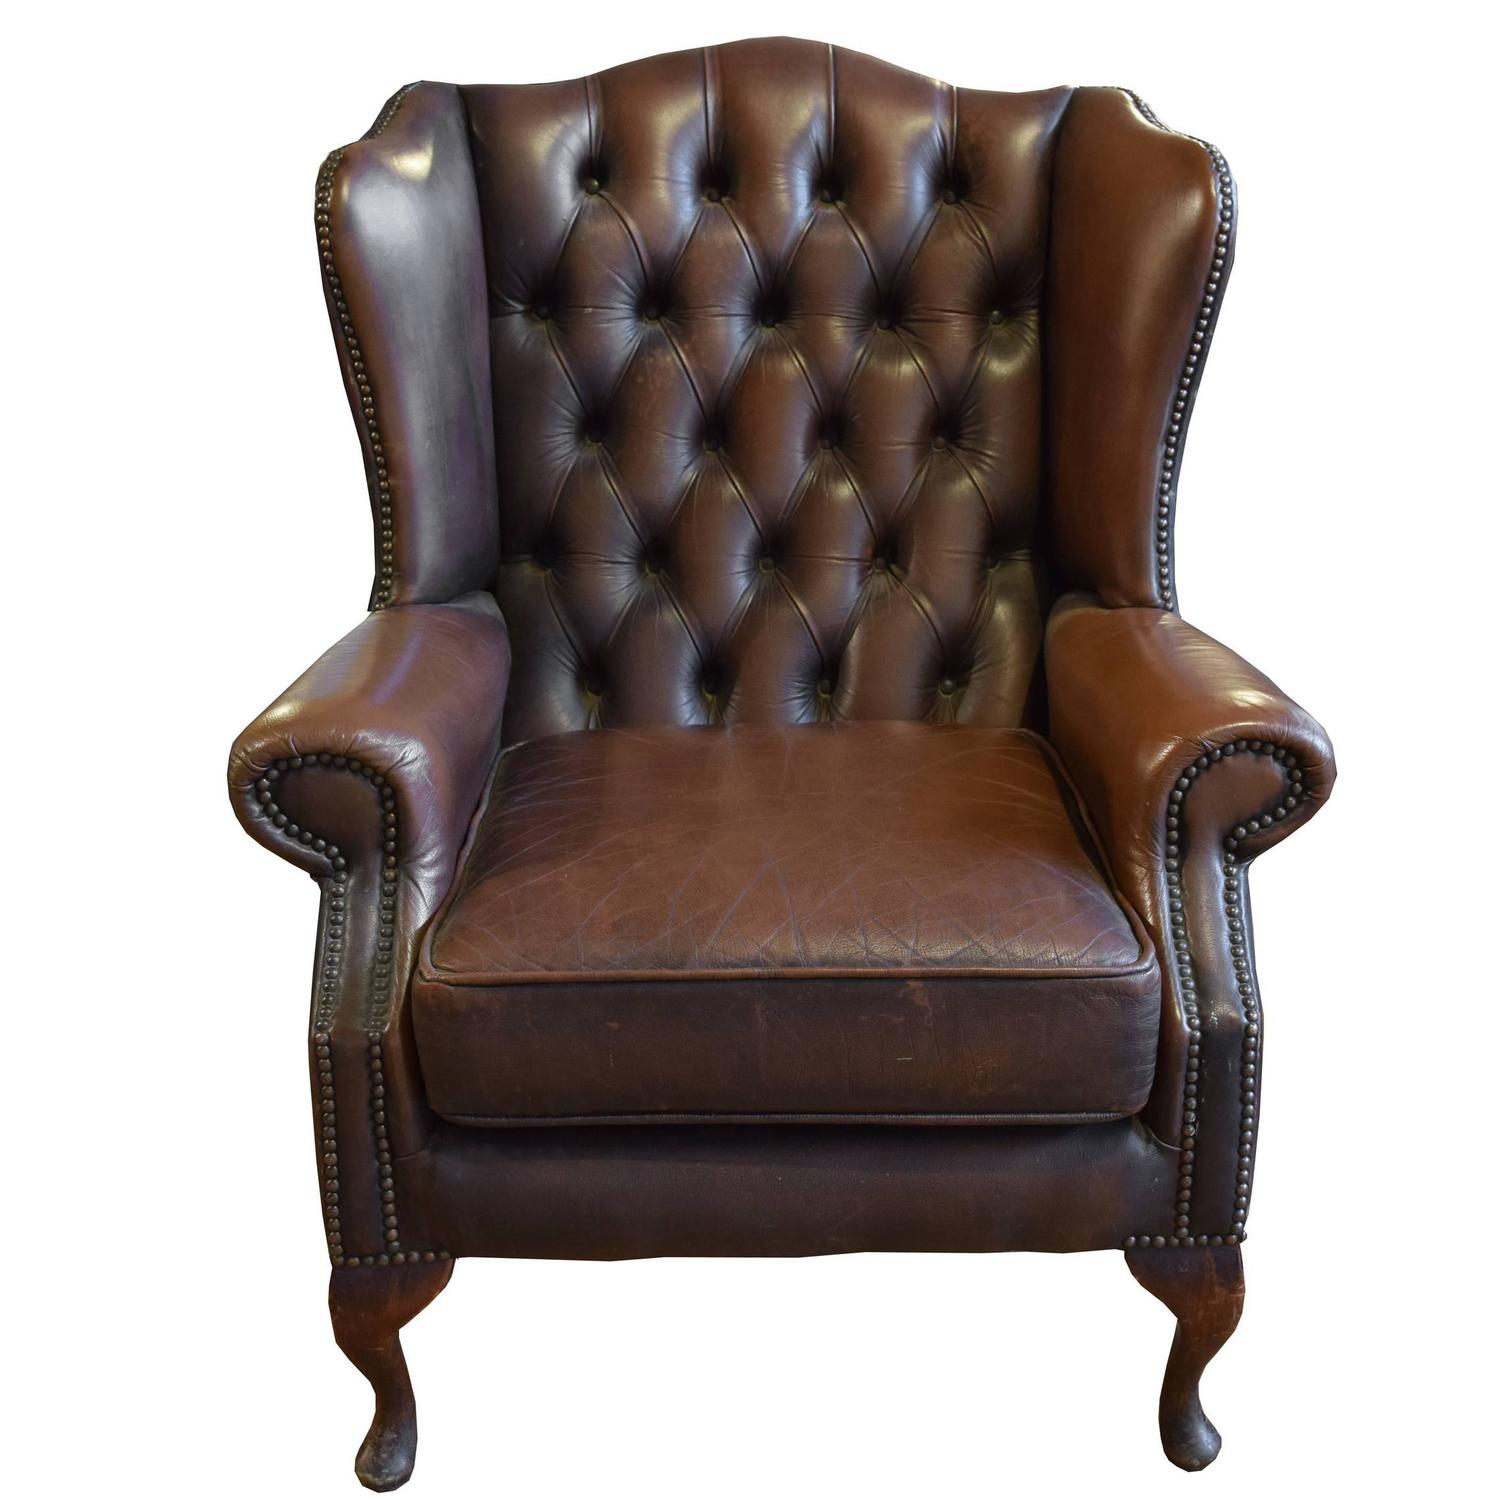 Tufted Leather Sofa And Chair: Tufted Leather Wing Chair For Sale At 1stdibs